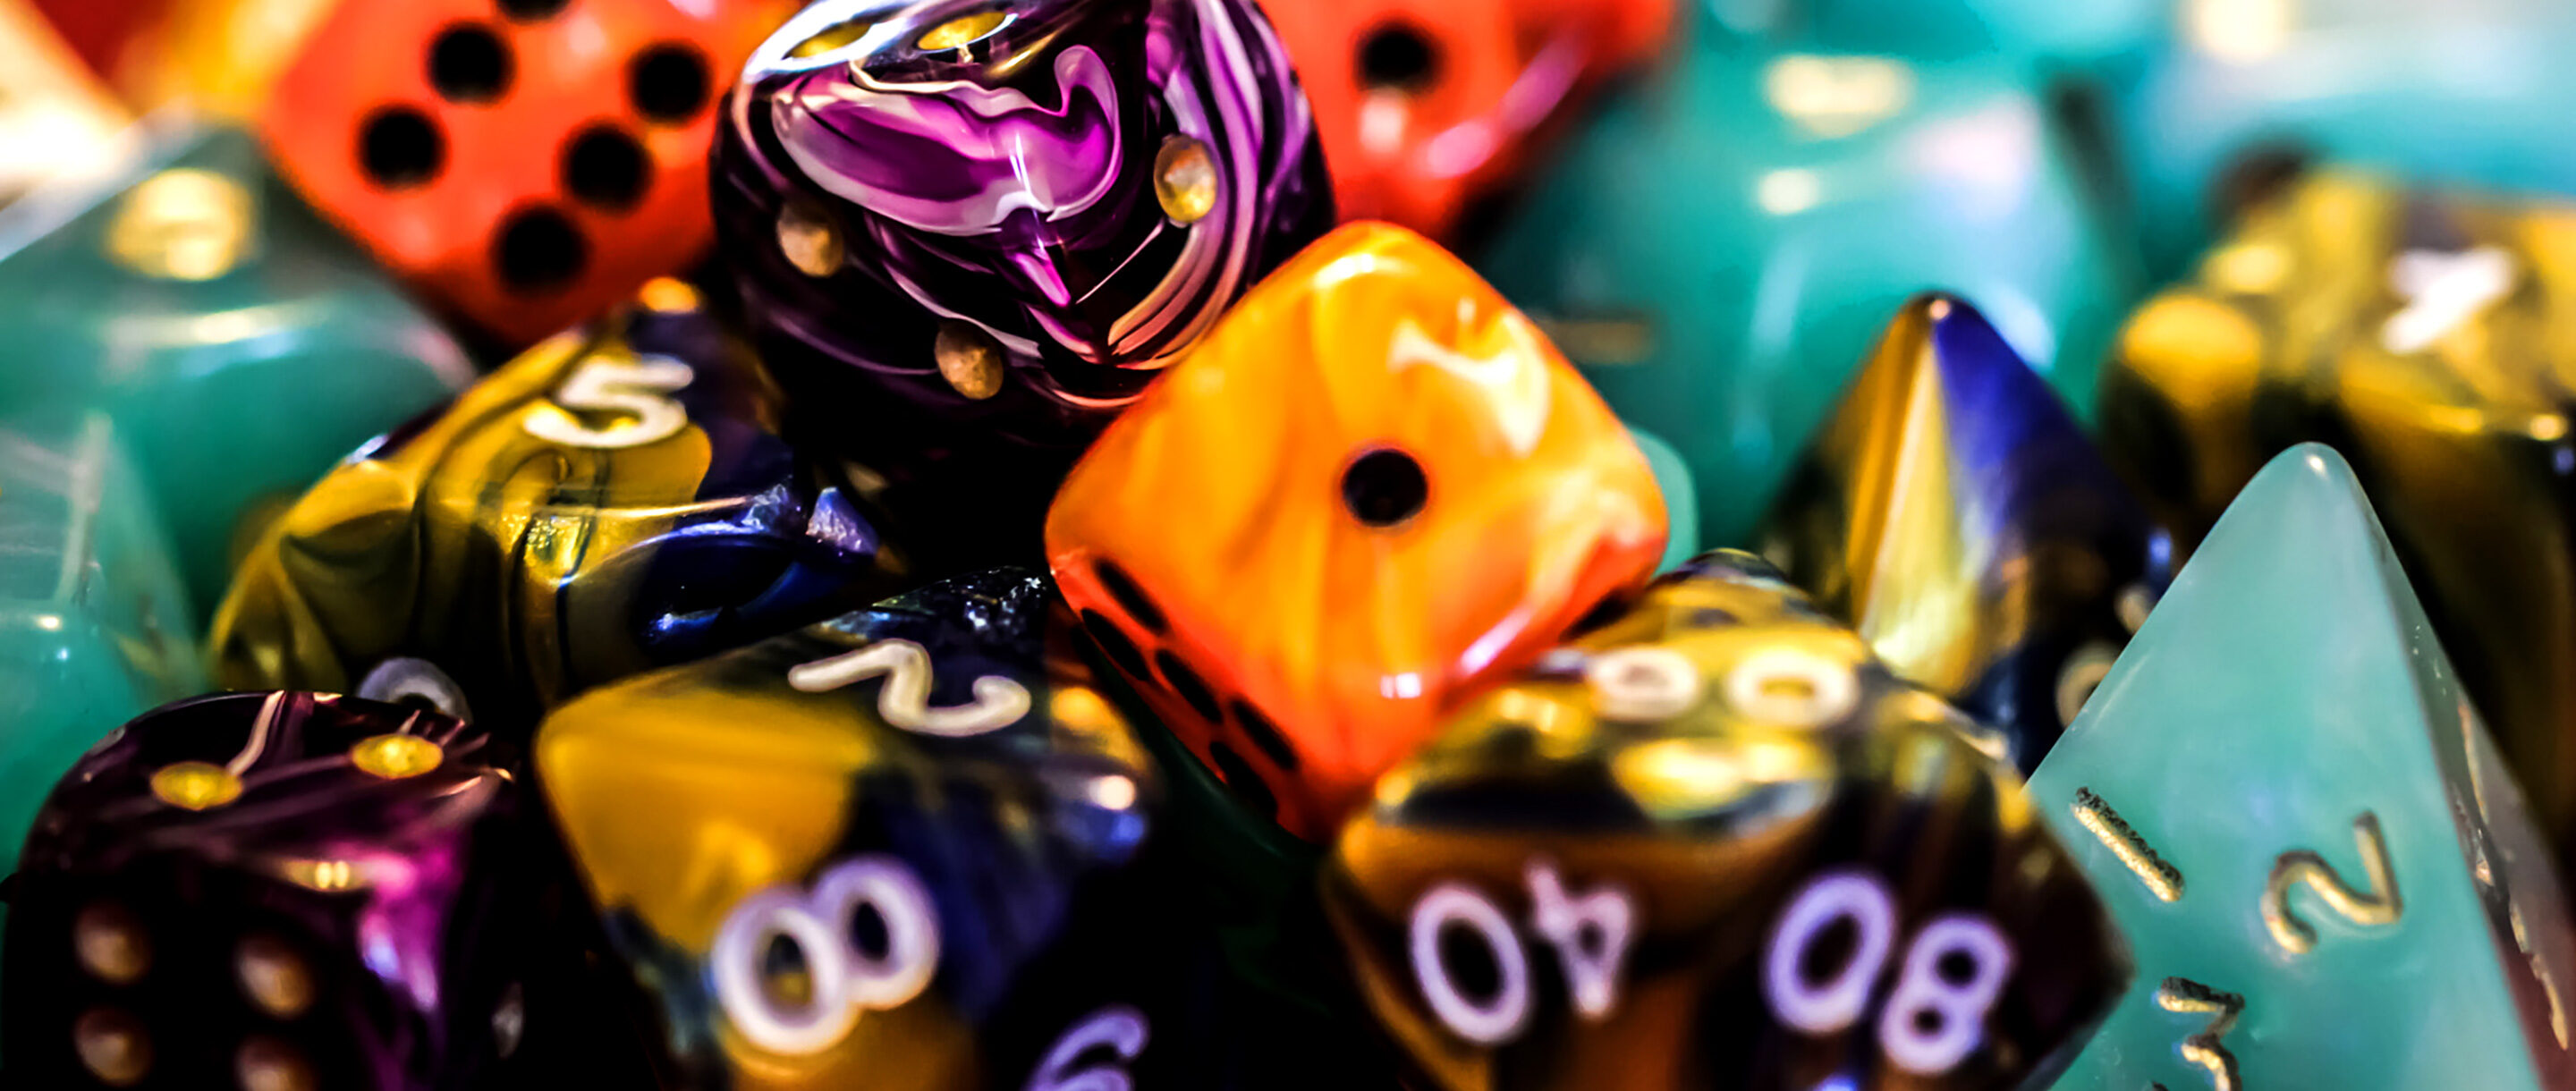 Photo of various kinds and colors of dice